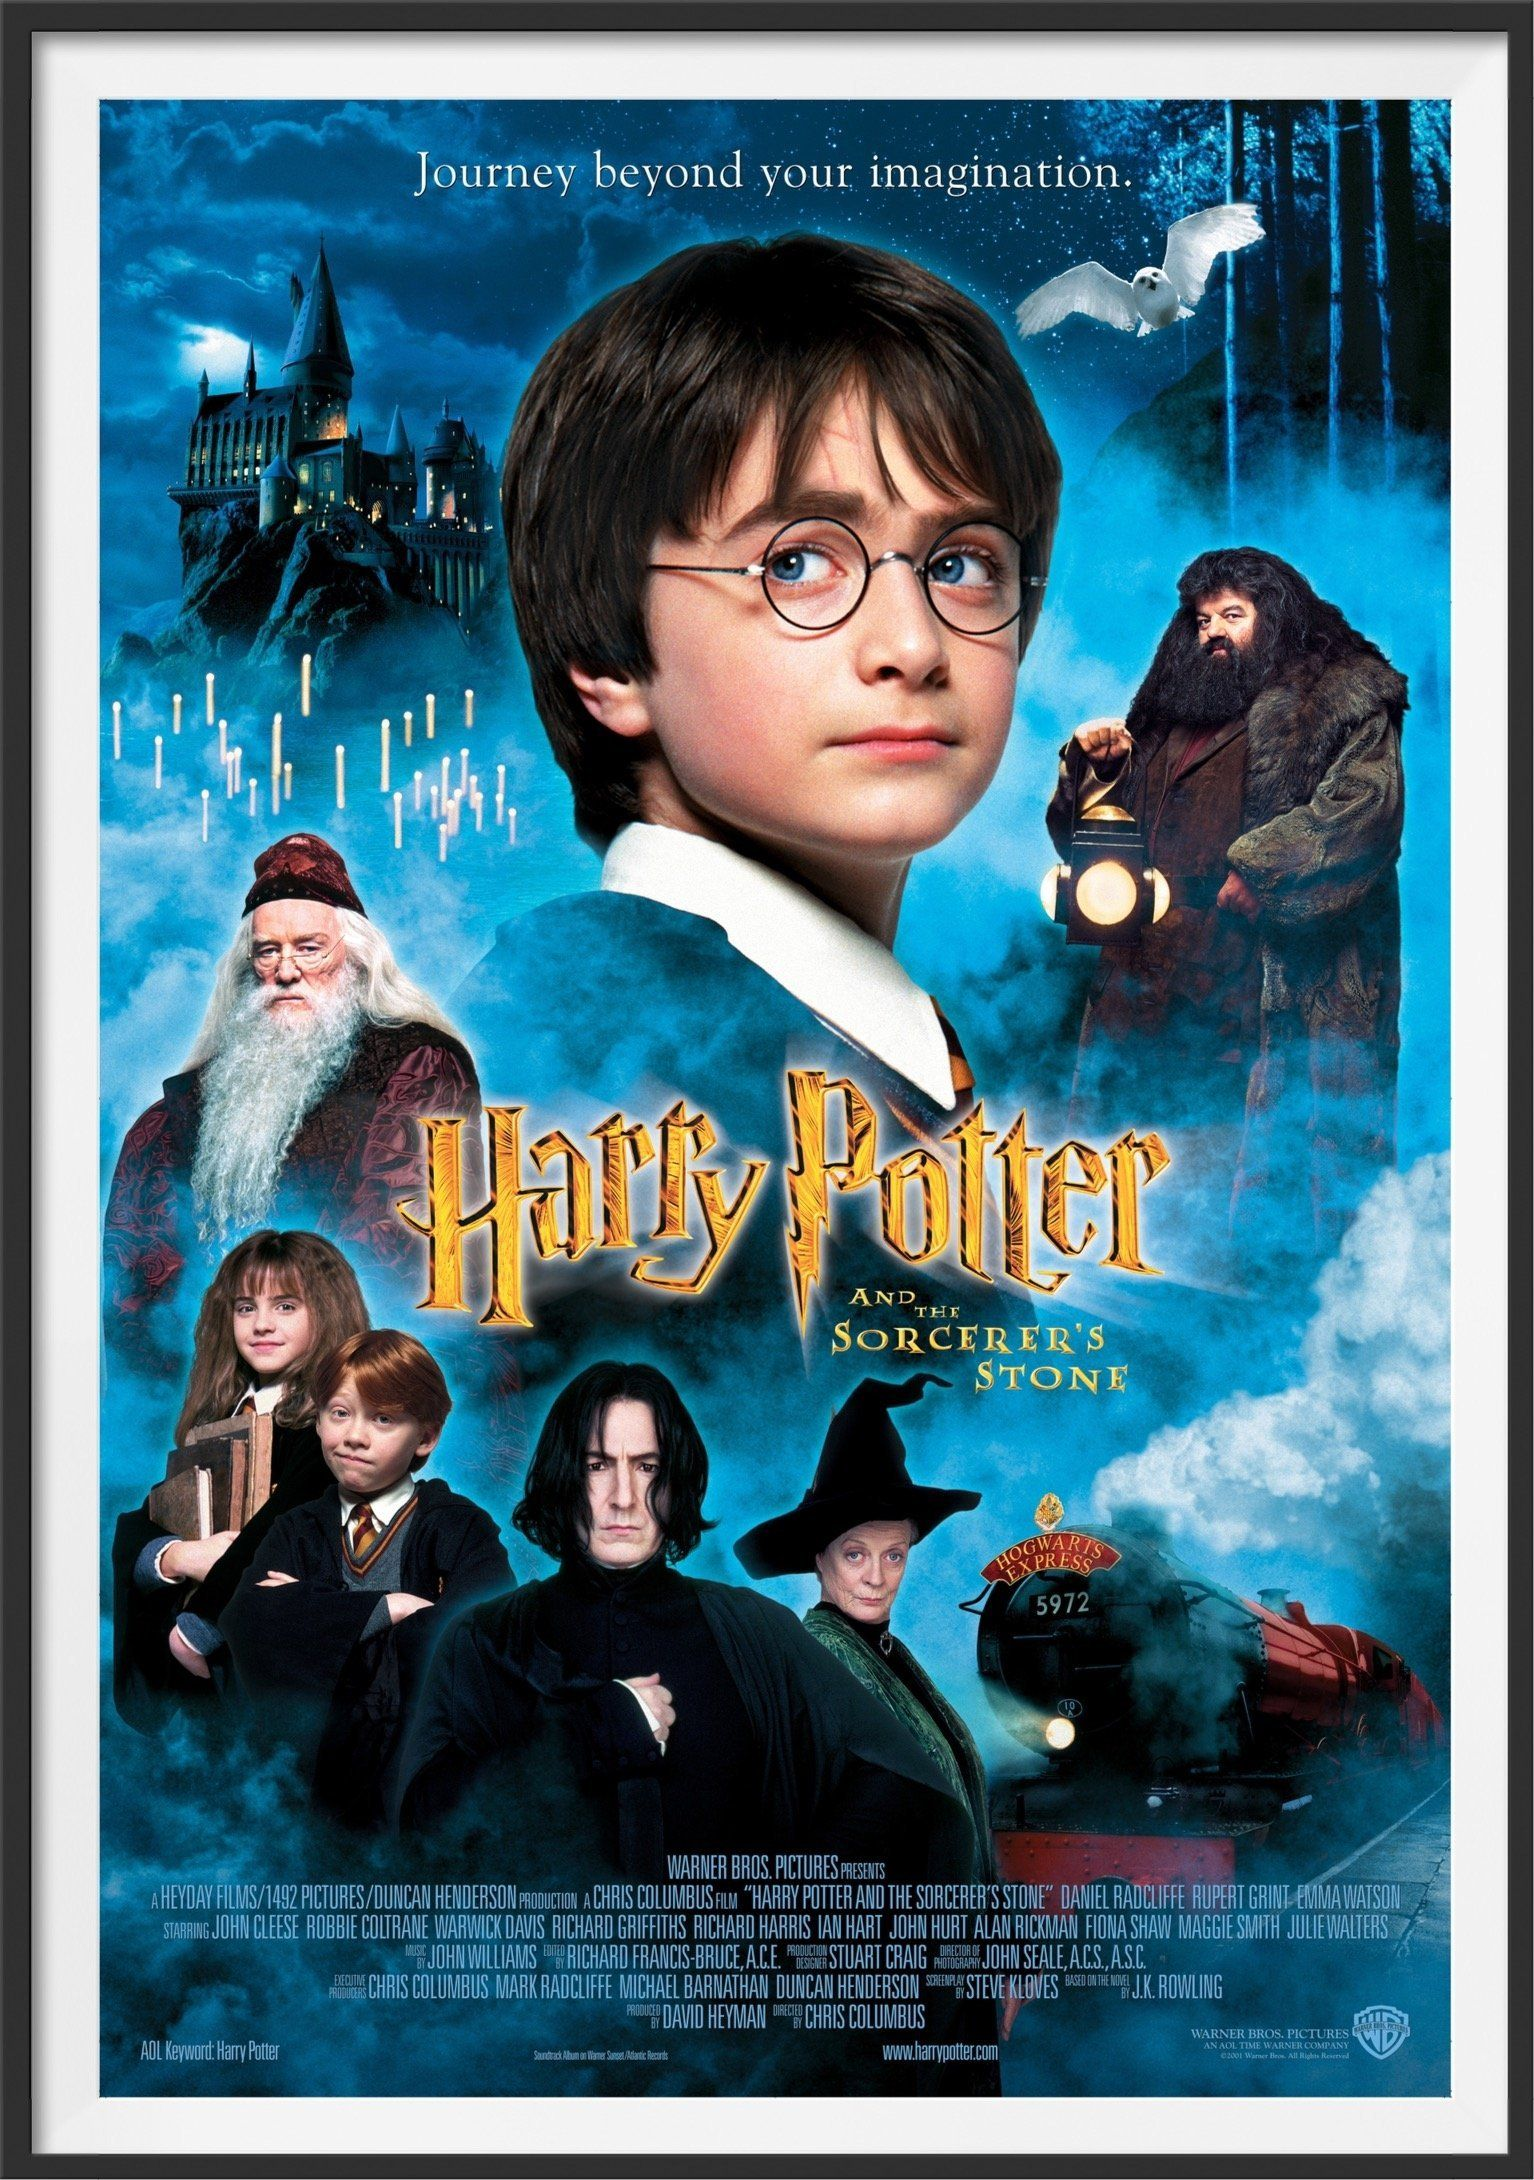 Harry Potter and the Philosopher's Stone - 2001